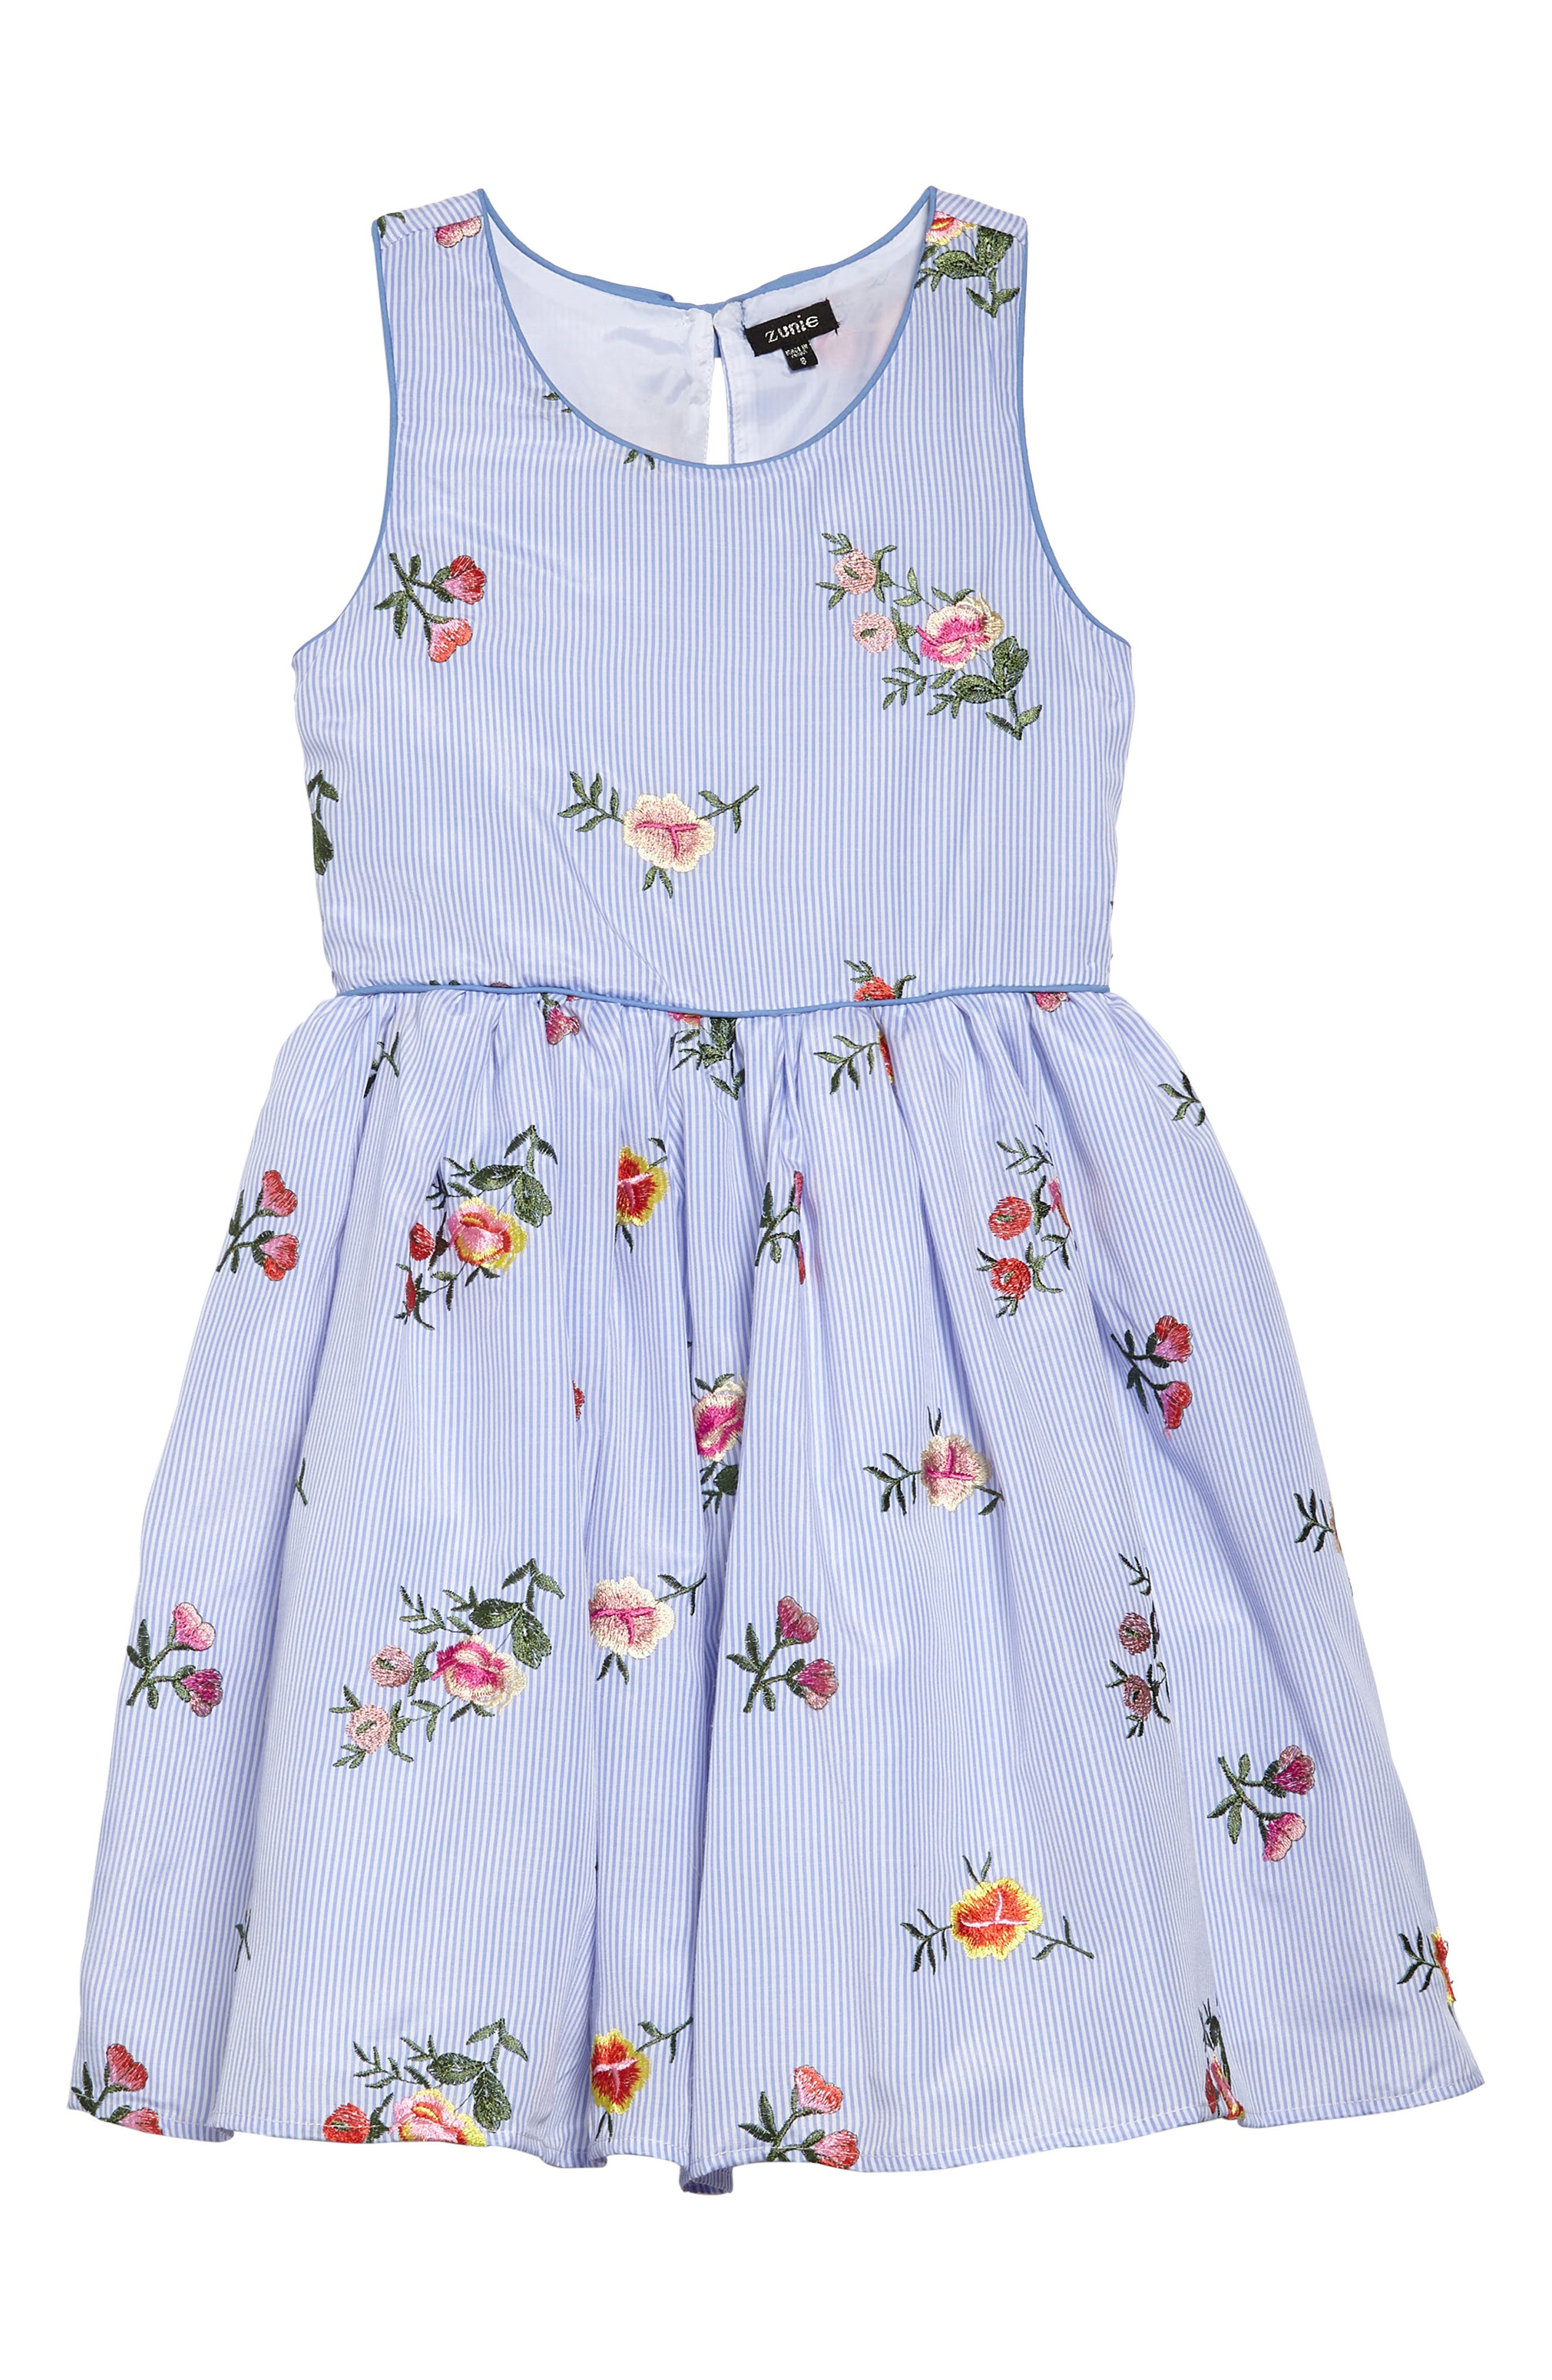 Stripe Embroidered Flower Sleeveless Dress,                             Main thumbnail 1, color,                             424